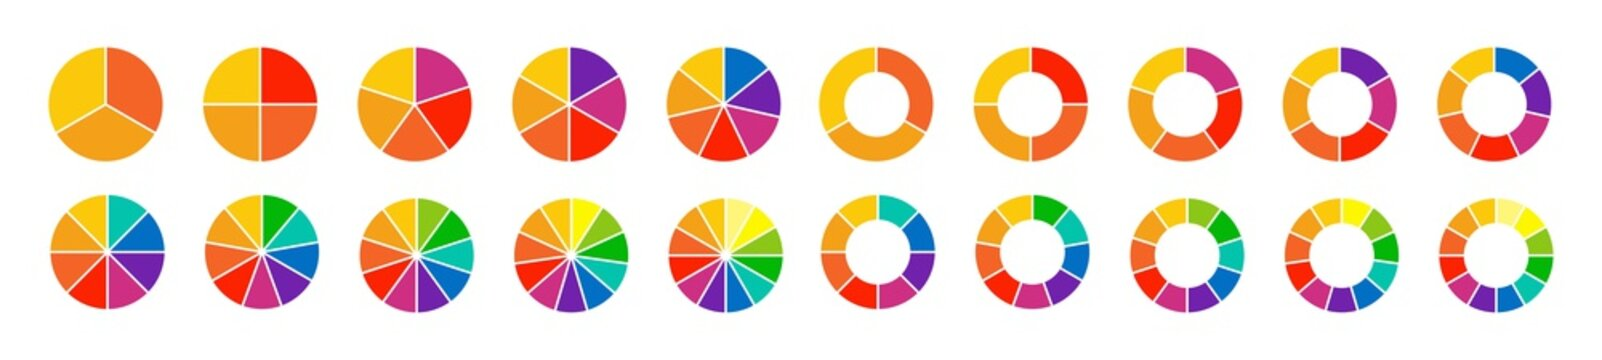 Pie charts diagrams. Set of different color circles isolated. Infographic element round shape. Vector illustration.